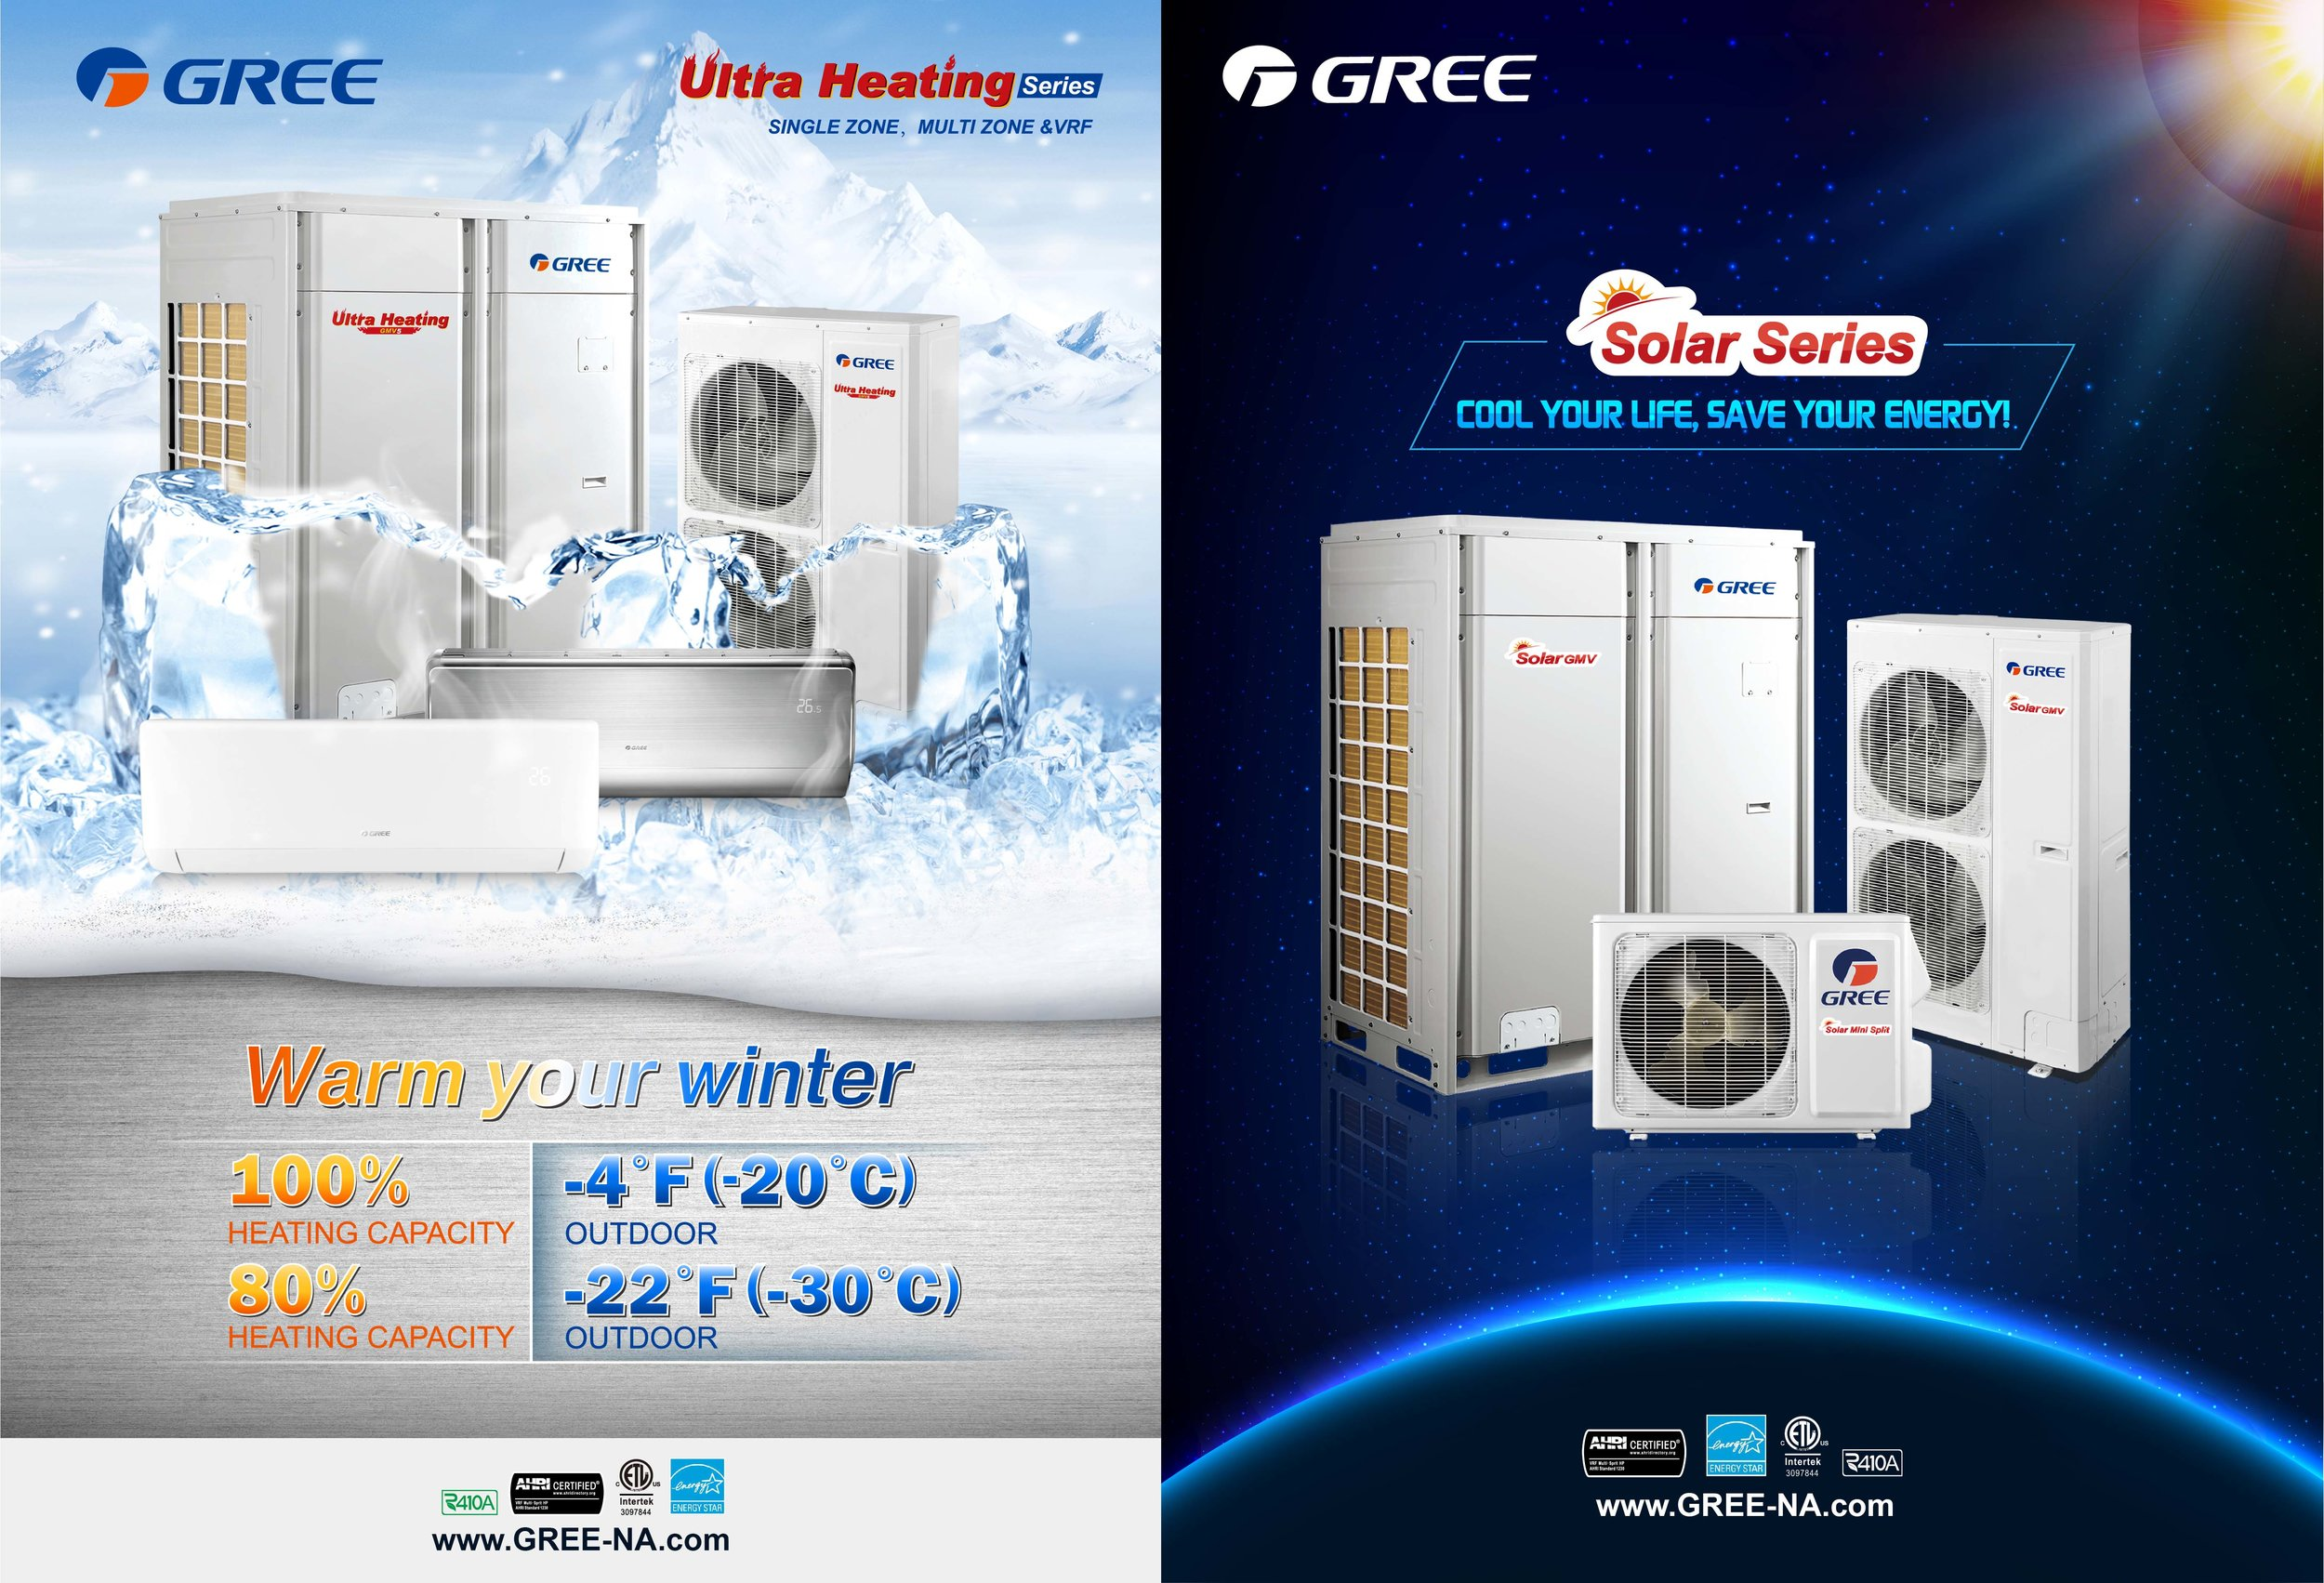 GREE-Ultra-Heating-Solar-GMV-Series-GMV5-VRF-Variable-Refrigerant-Flow-Commercial-Air-Conditioners-GREE-North-America-www.GREE-NA.com